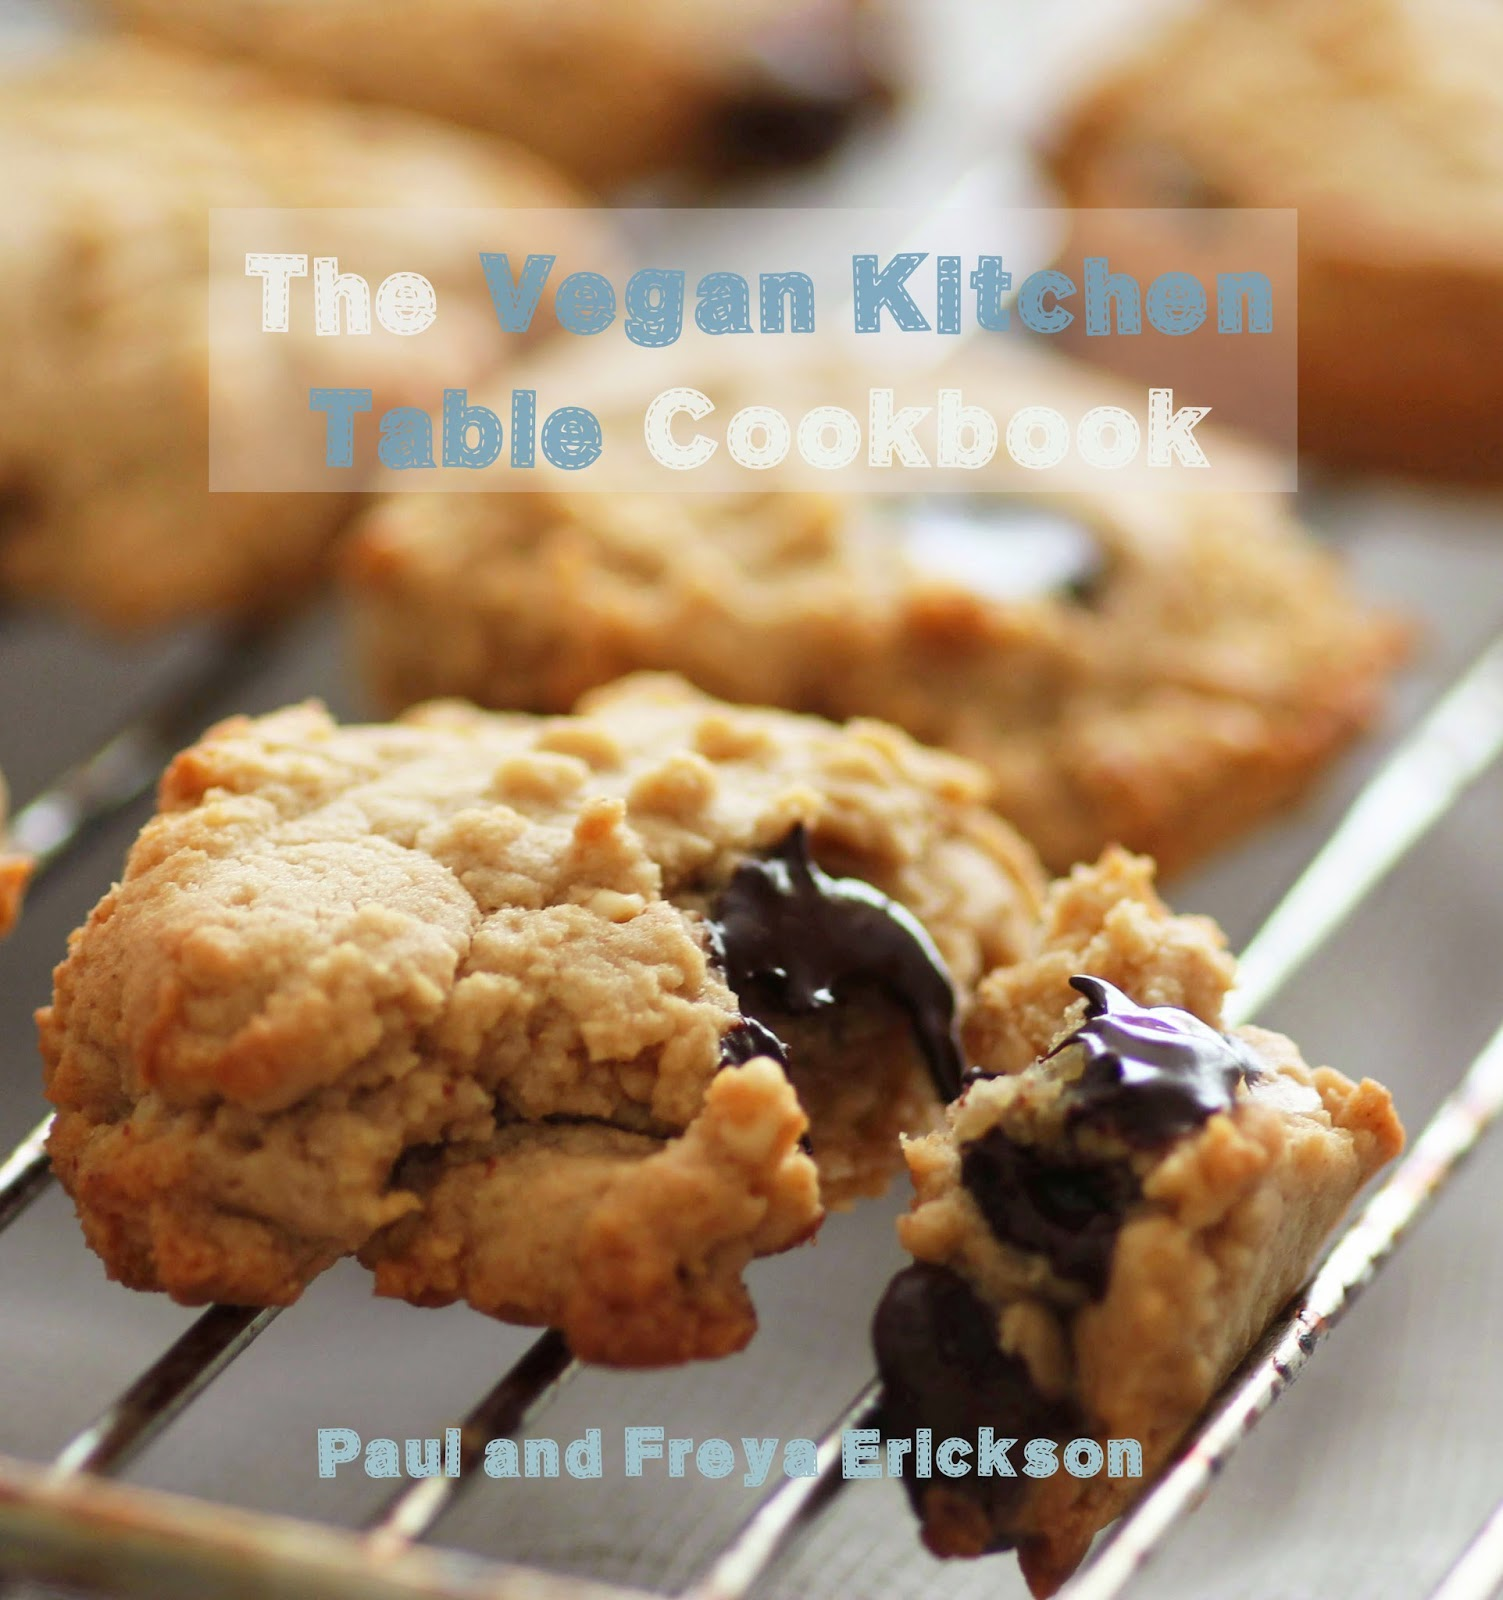 http://www.amazon.co.uk/The-Vegan-Kitchen-Table-Cookbook/dp/149605119X/ref=sr_1_1?ie=UTF8&qid=1396275491&sr=8-1&keywords=freya+erickson